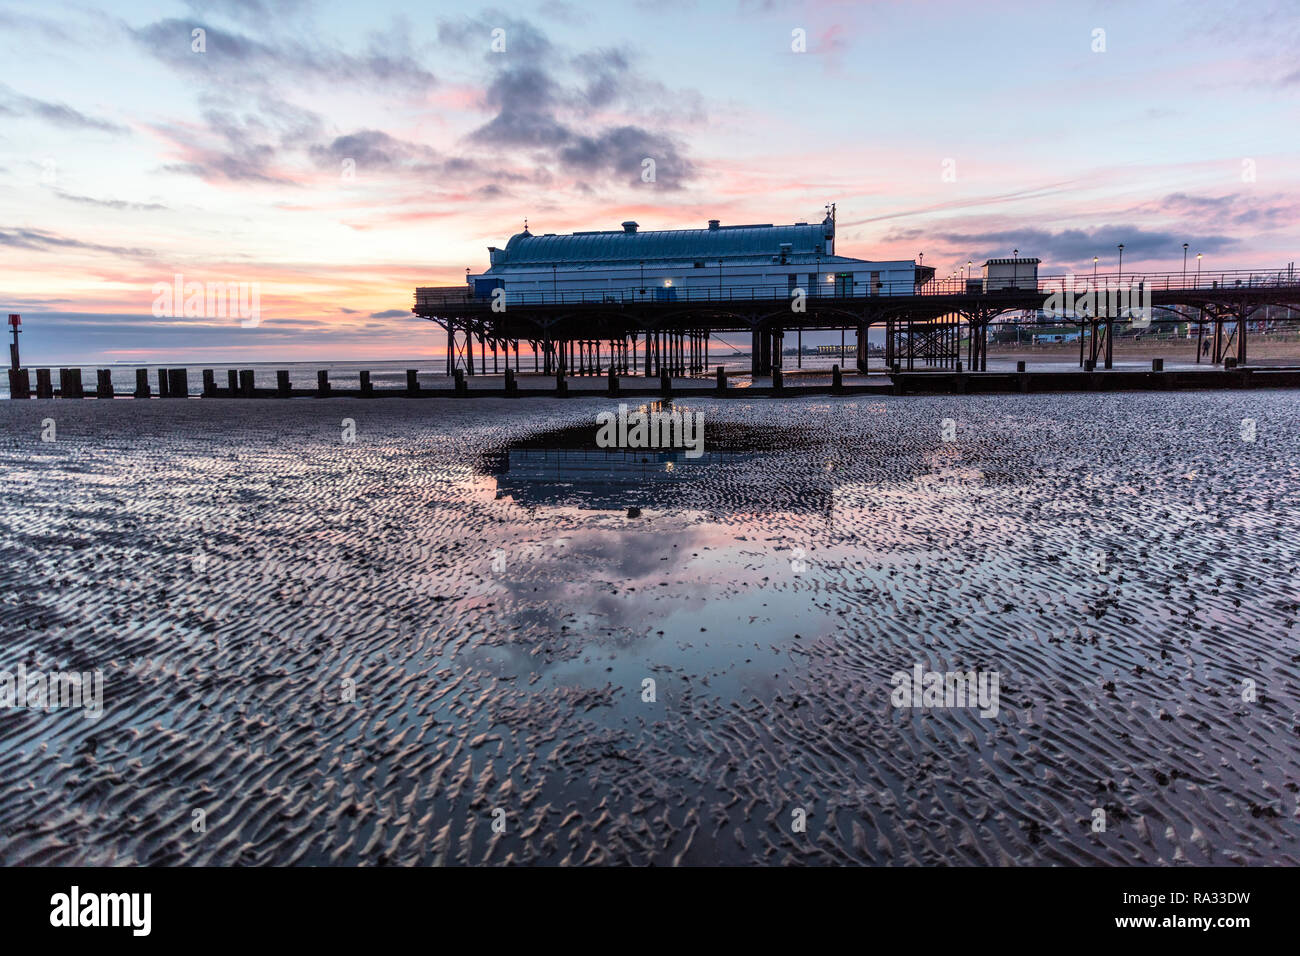 Cleethorpes, Lincolnshire, UK. 31st Dec, 2018. UK Weather: Red sunrise skies in Cleethorpes, Lincolnshire, East Coast, UK. 31st Dec, 2018. Red sky making the perfect backdrop to Cleethorpes Pier with partial cloud. Credit: Tommy (Louth)/Alamy Live News Stock Photo